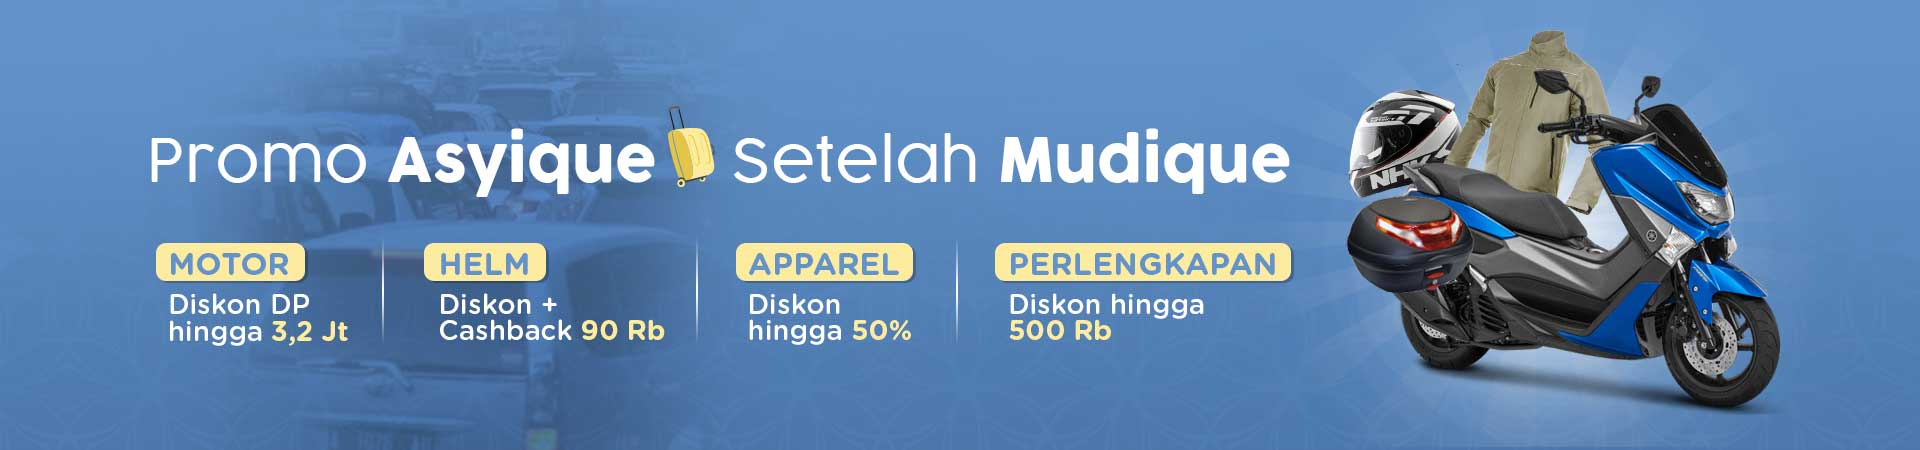 https://moladin.com/promo/all/promo-asique-setelah-mudique